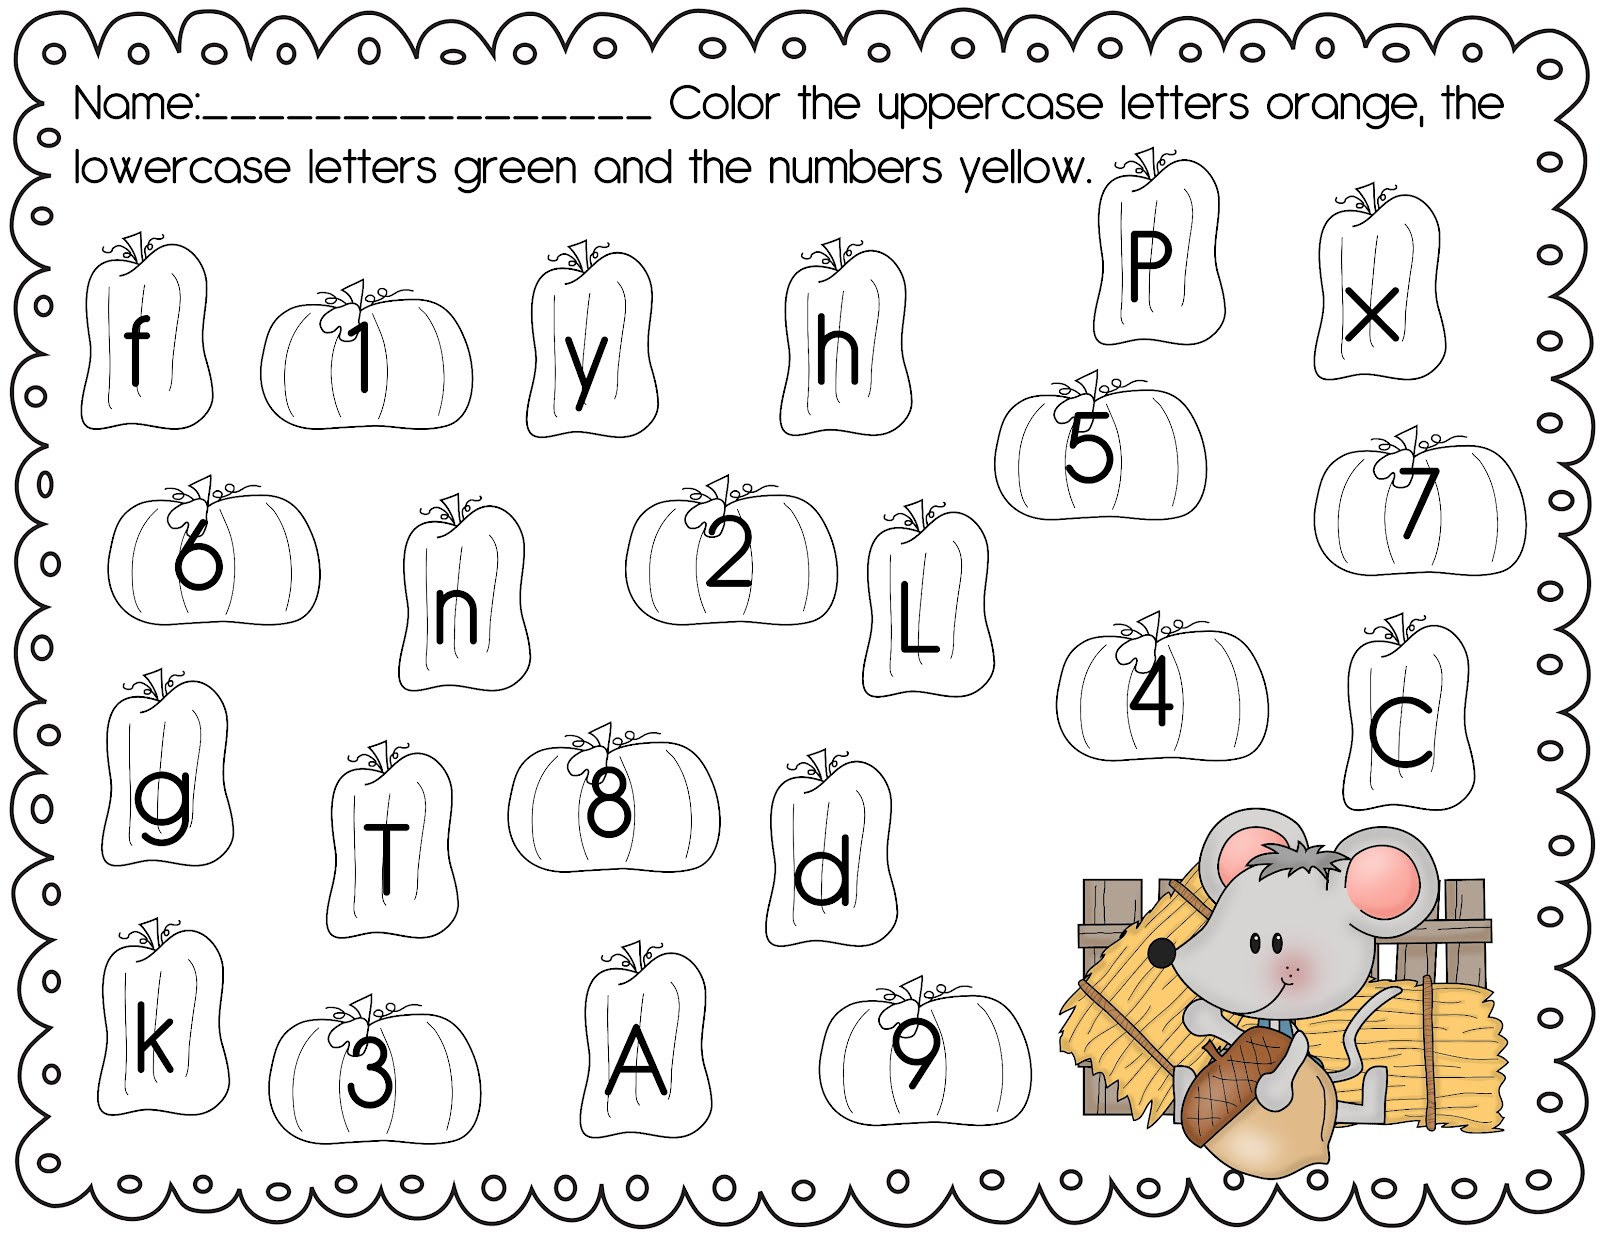 worksheet Abc Worksheets For Pre-k the crazy pre k classroom fall freebie themed abc and 123 worksheets deanna jump reaches 1000000 00 on tpt